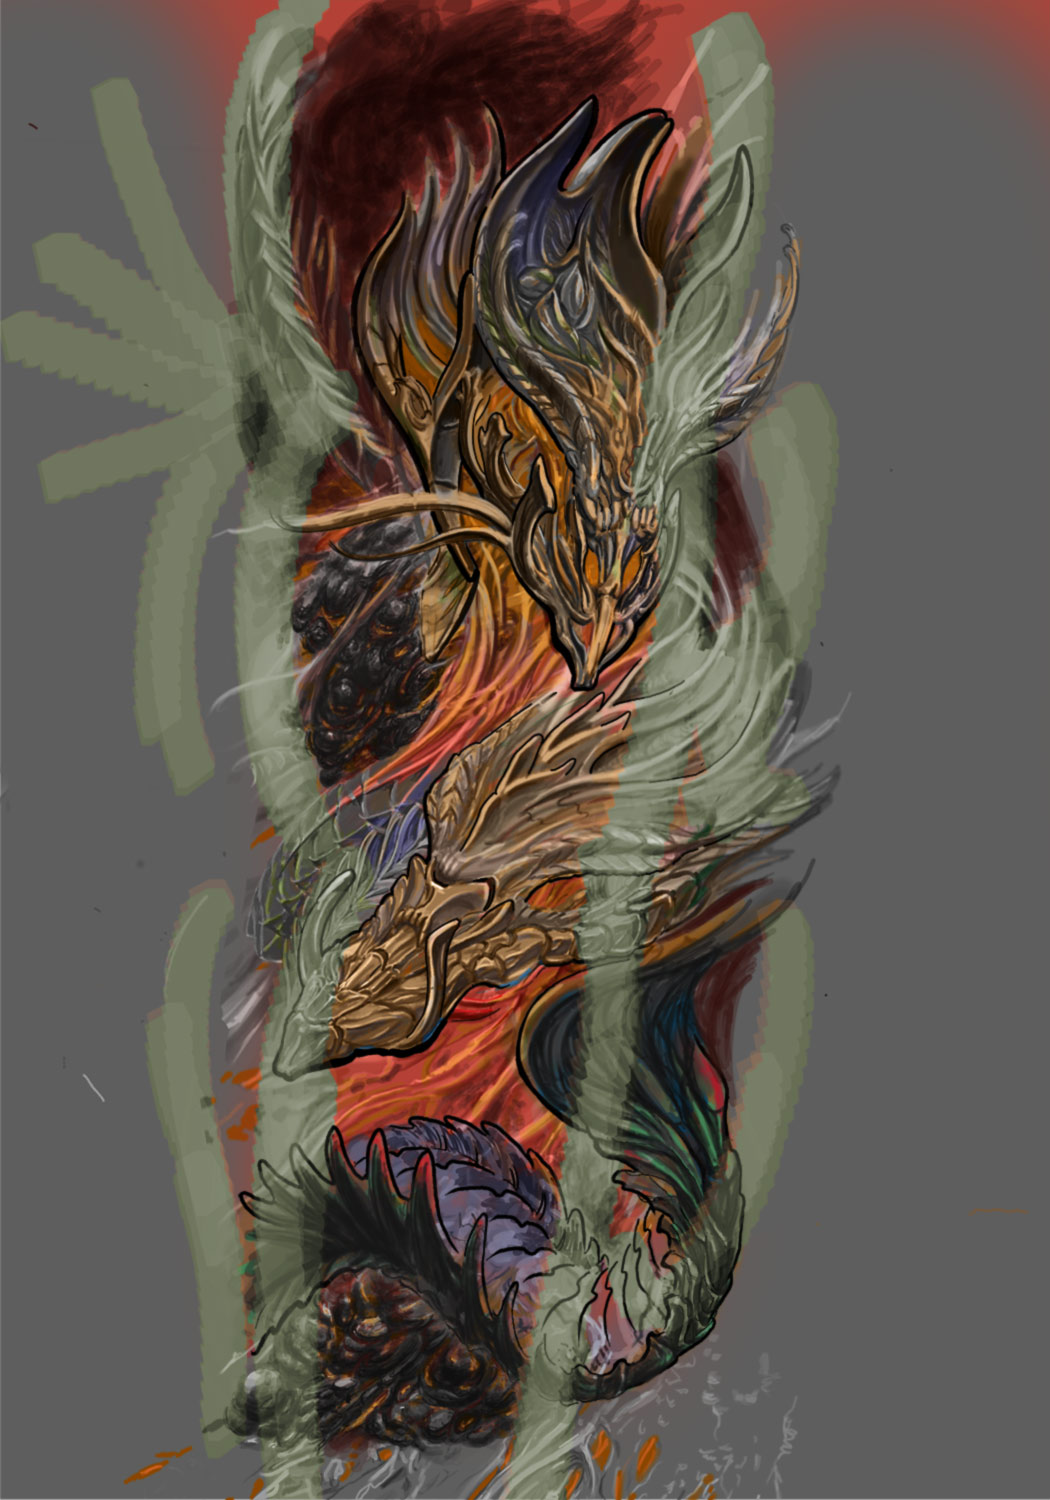 Feuerdrache4Alien-Photoshop-AffinityPhoto-Zeichnung-Art-Seleeve-Wanna-Do-Biomechanik-Raul-Tattoo-Muenchen-Hits-for-Life-tattoo-Sleeve-mit-Begrenzung-Arm